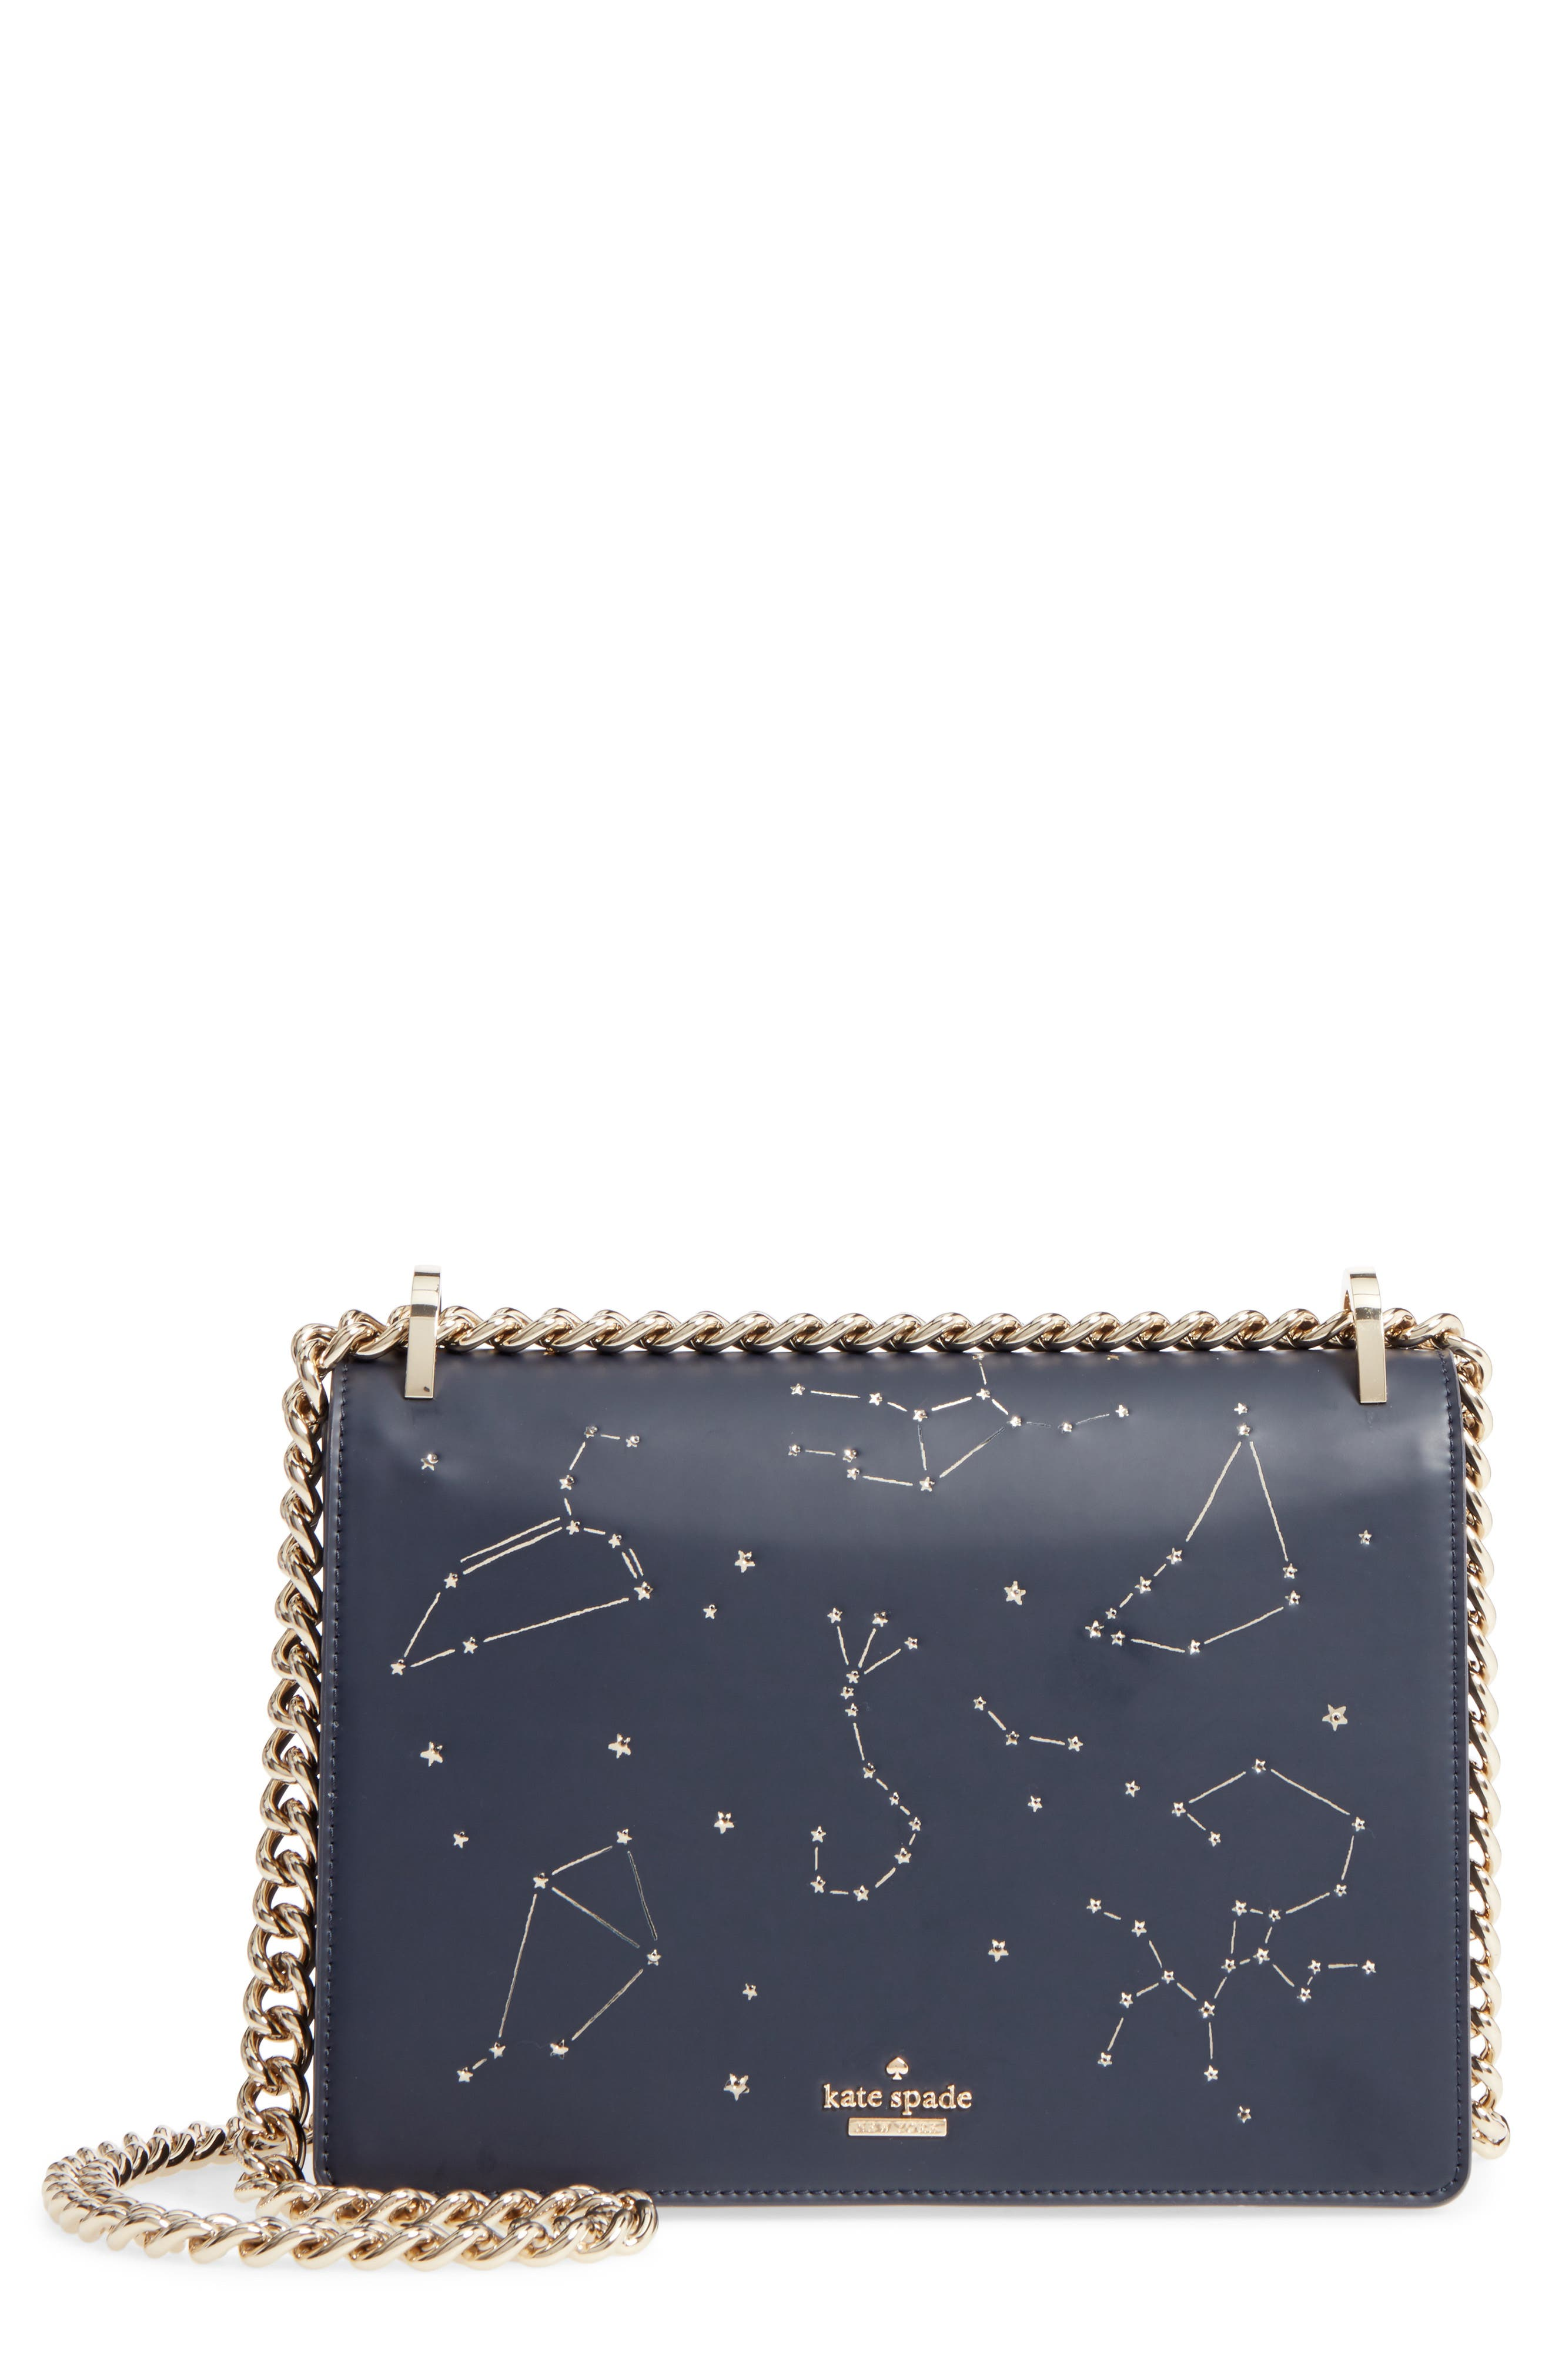 KATE SPADE NEW YORK,                             starbright marci LED light-up faux leather shoulder bag,                             Main thumbnail 1, color,                             400